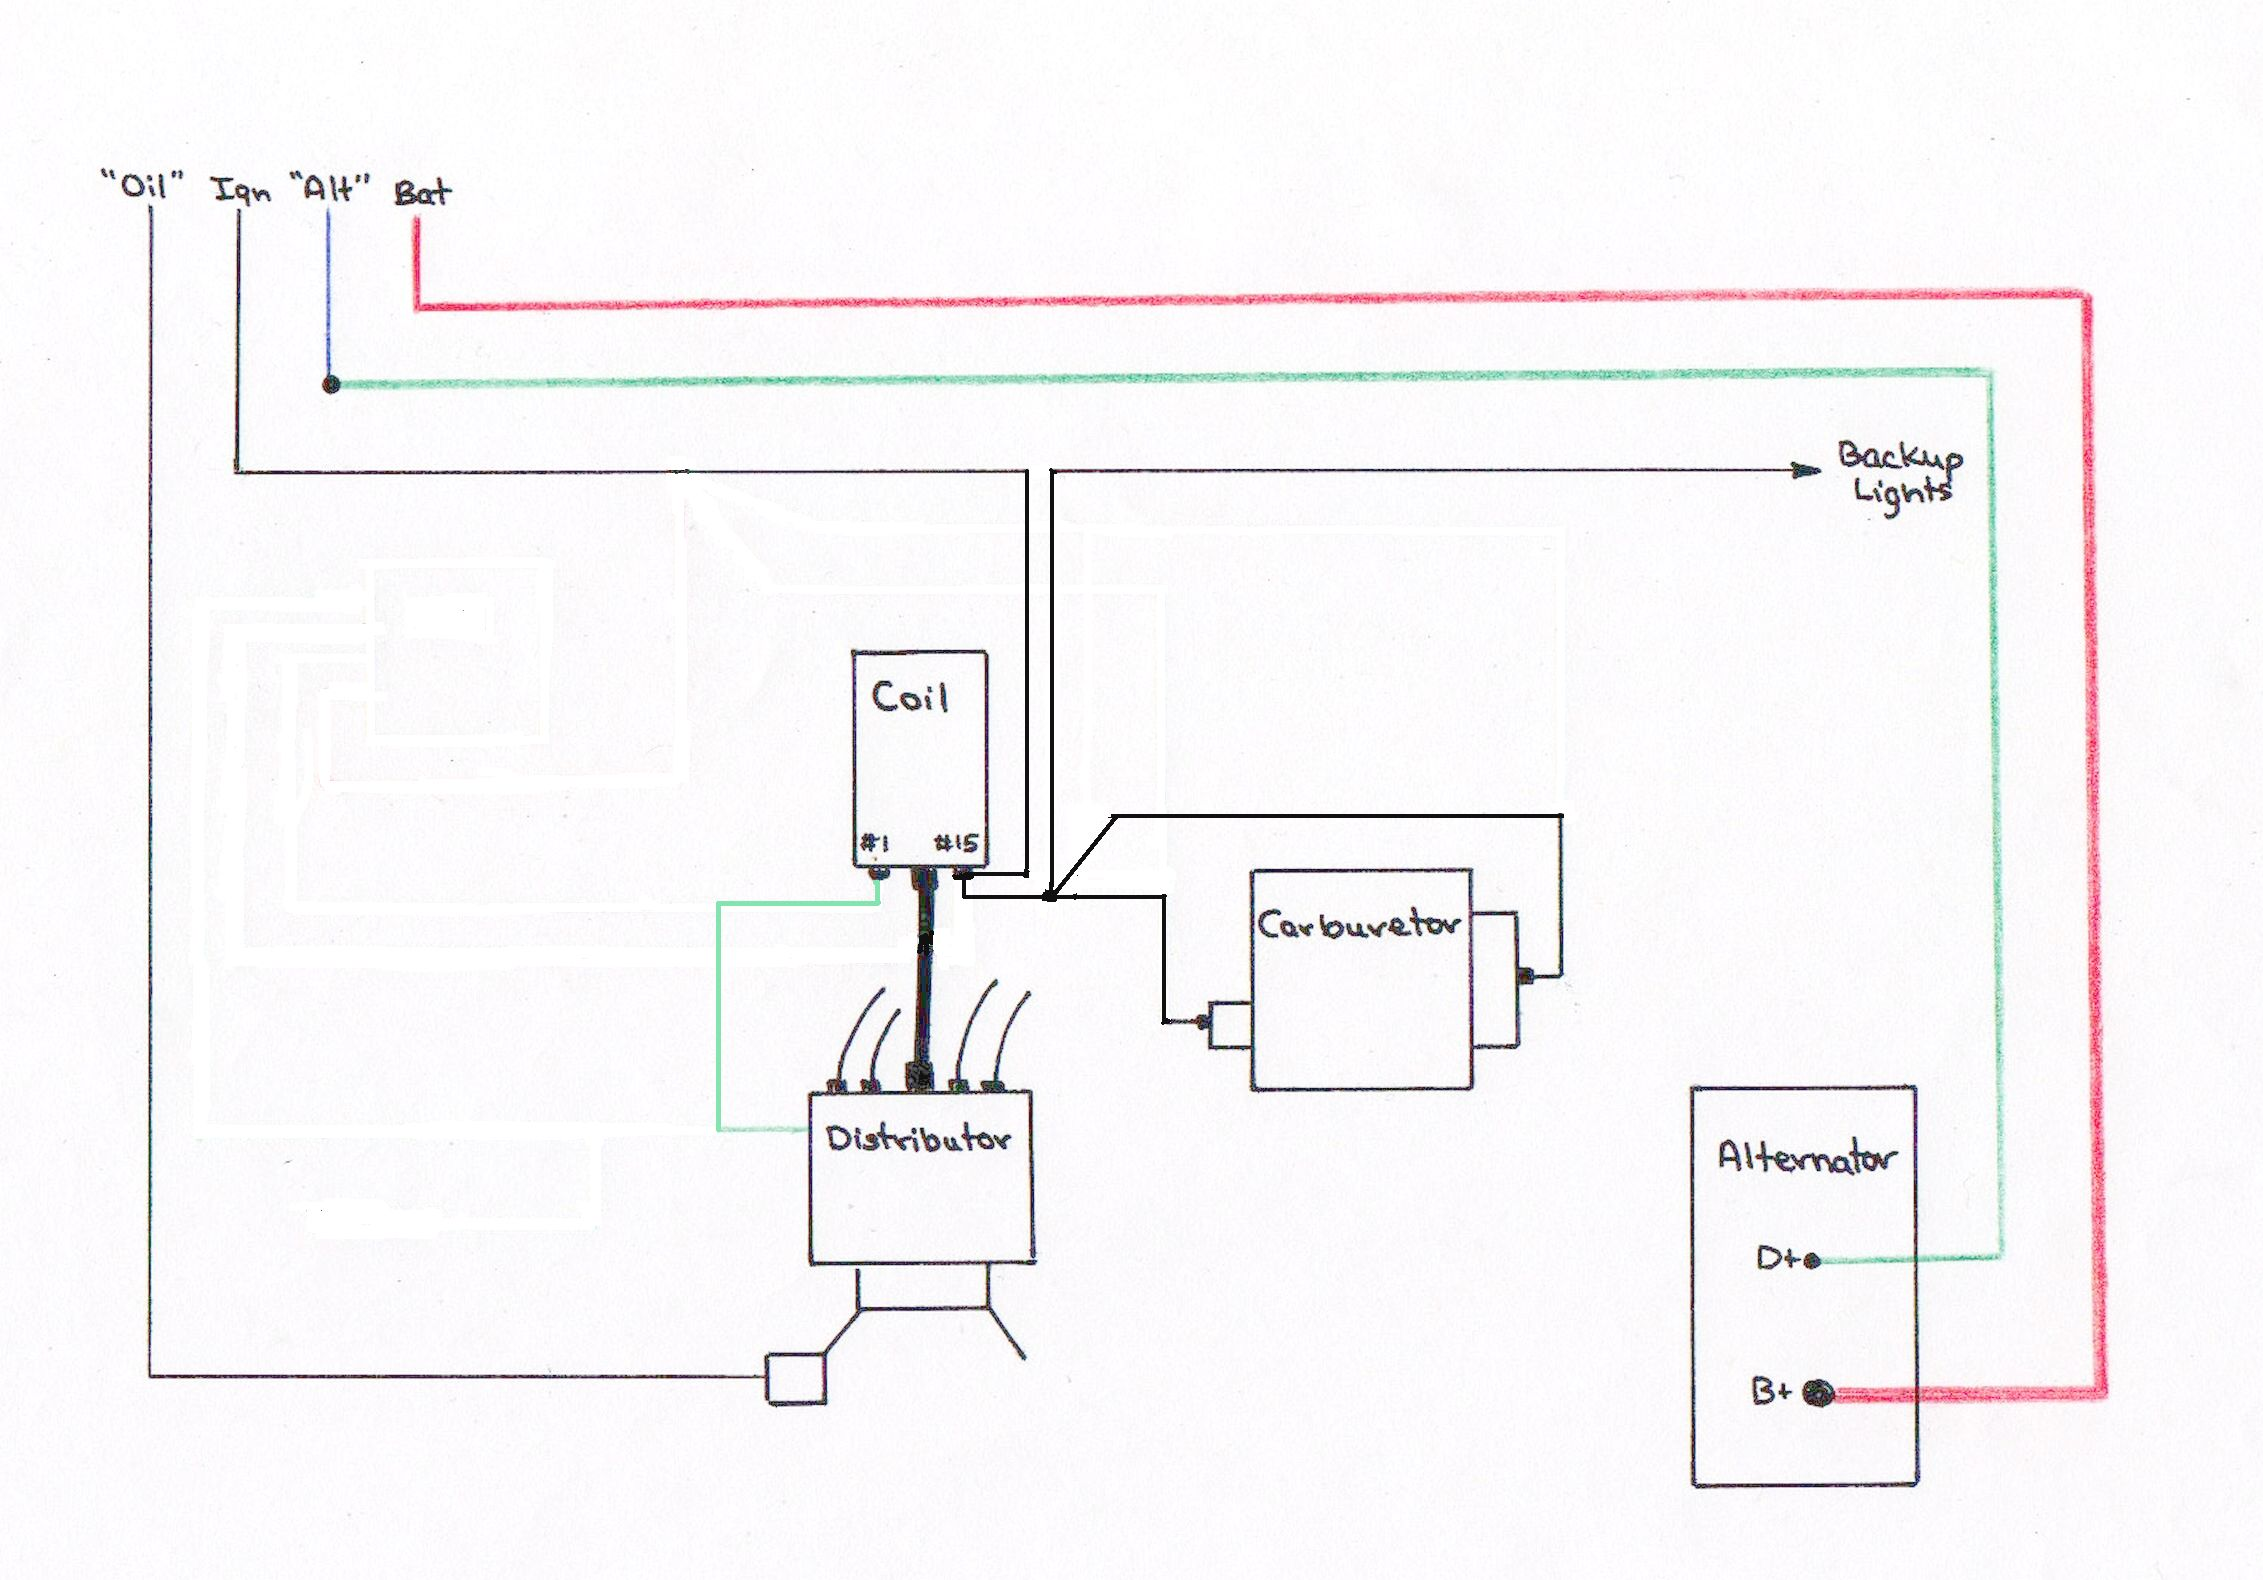 handdrawn_schematic alternator wiring valeo alternator regulator wiring diagram at sewacar.co